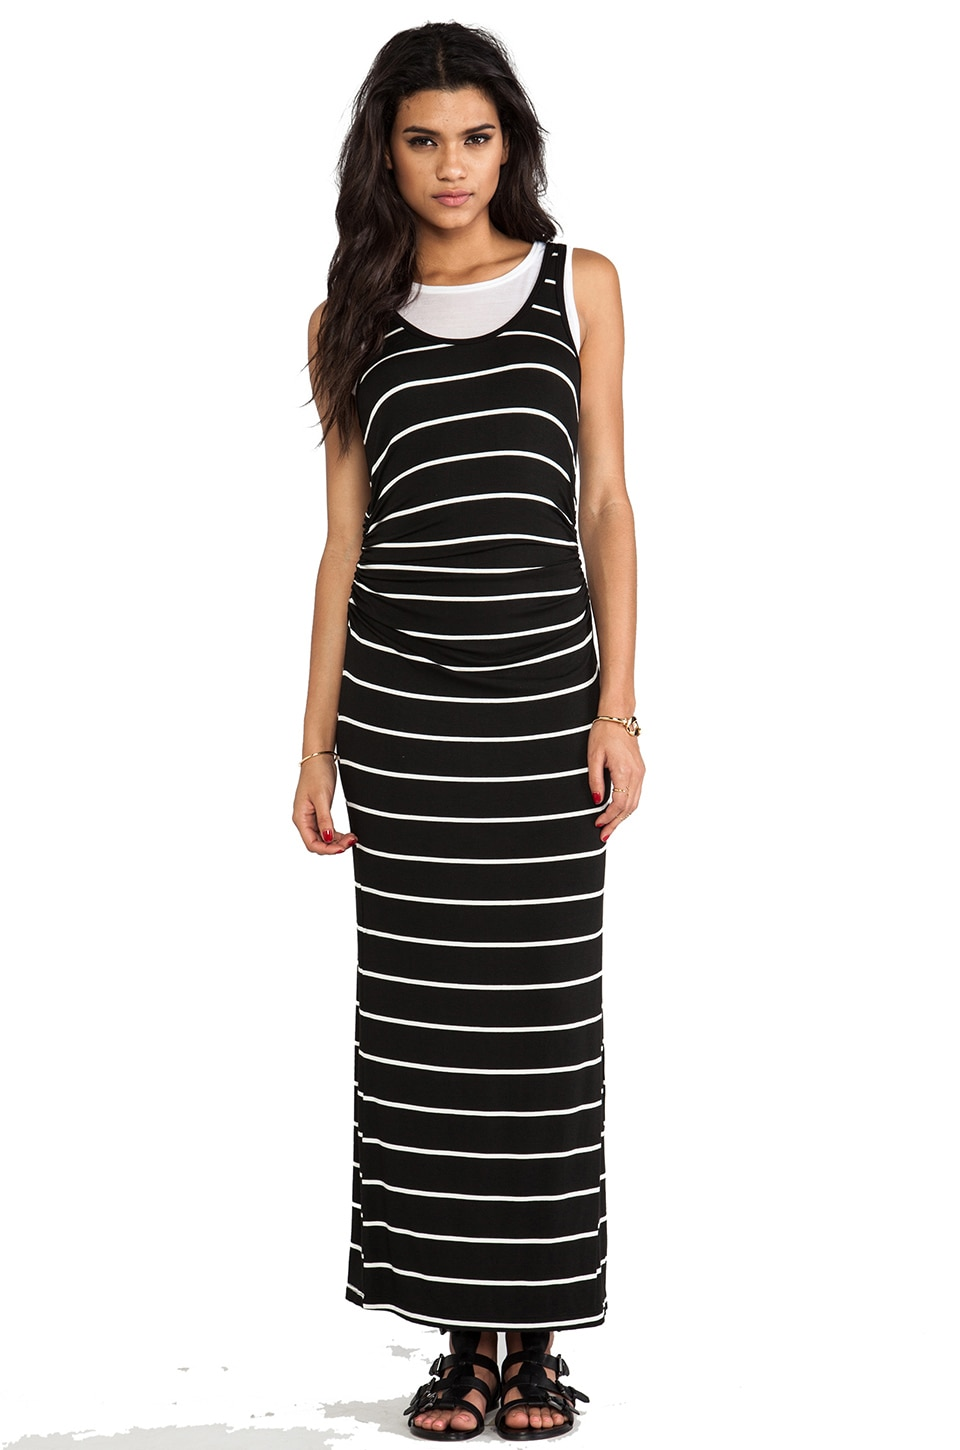 Kain Double Layered Astrid Maxi Dress in Black/White Stripe over White